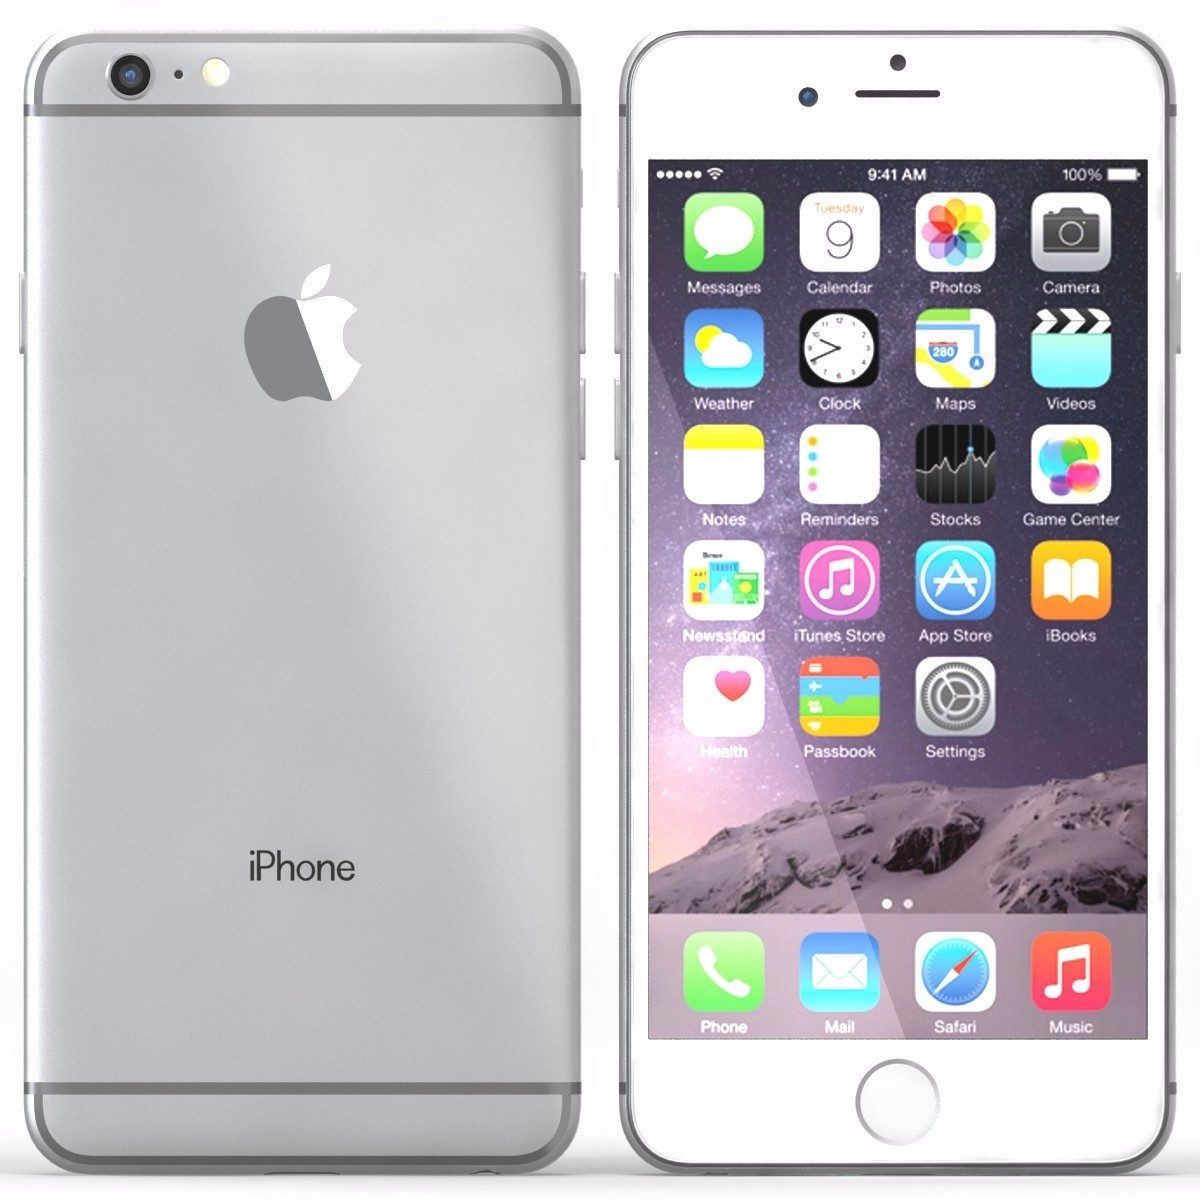 Alcampo Telefonos Moviles Libres Celular Apple Iphone 6 64gb Space Gray Grado A Caja